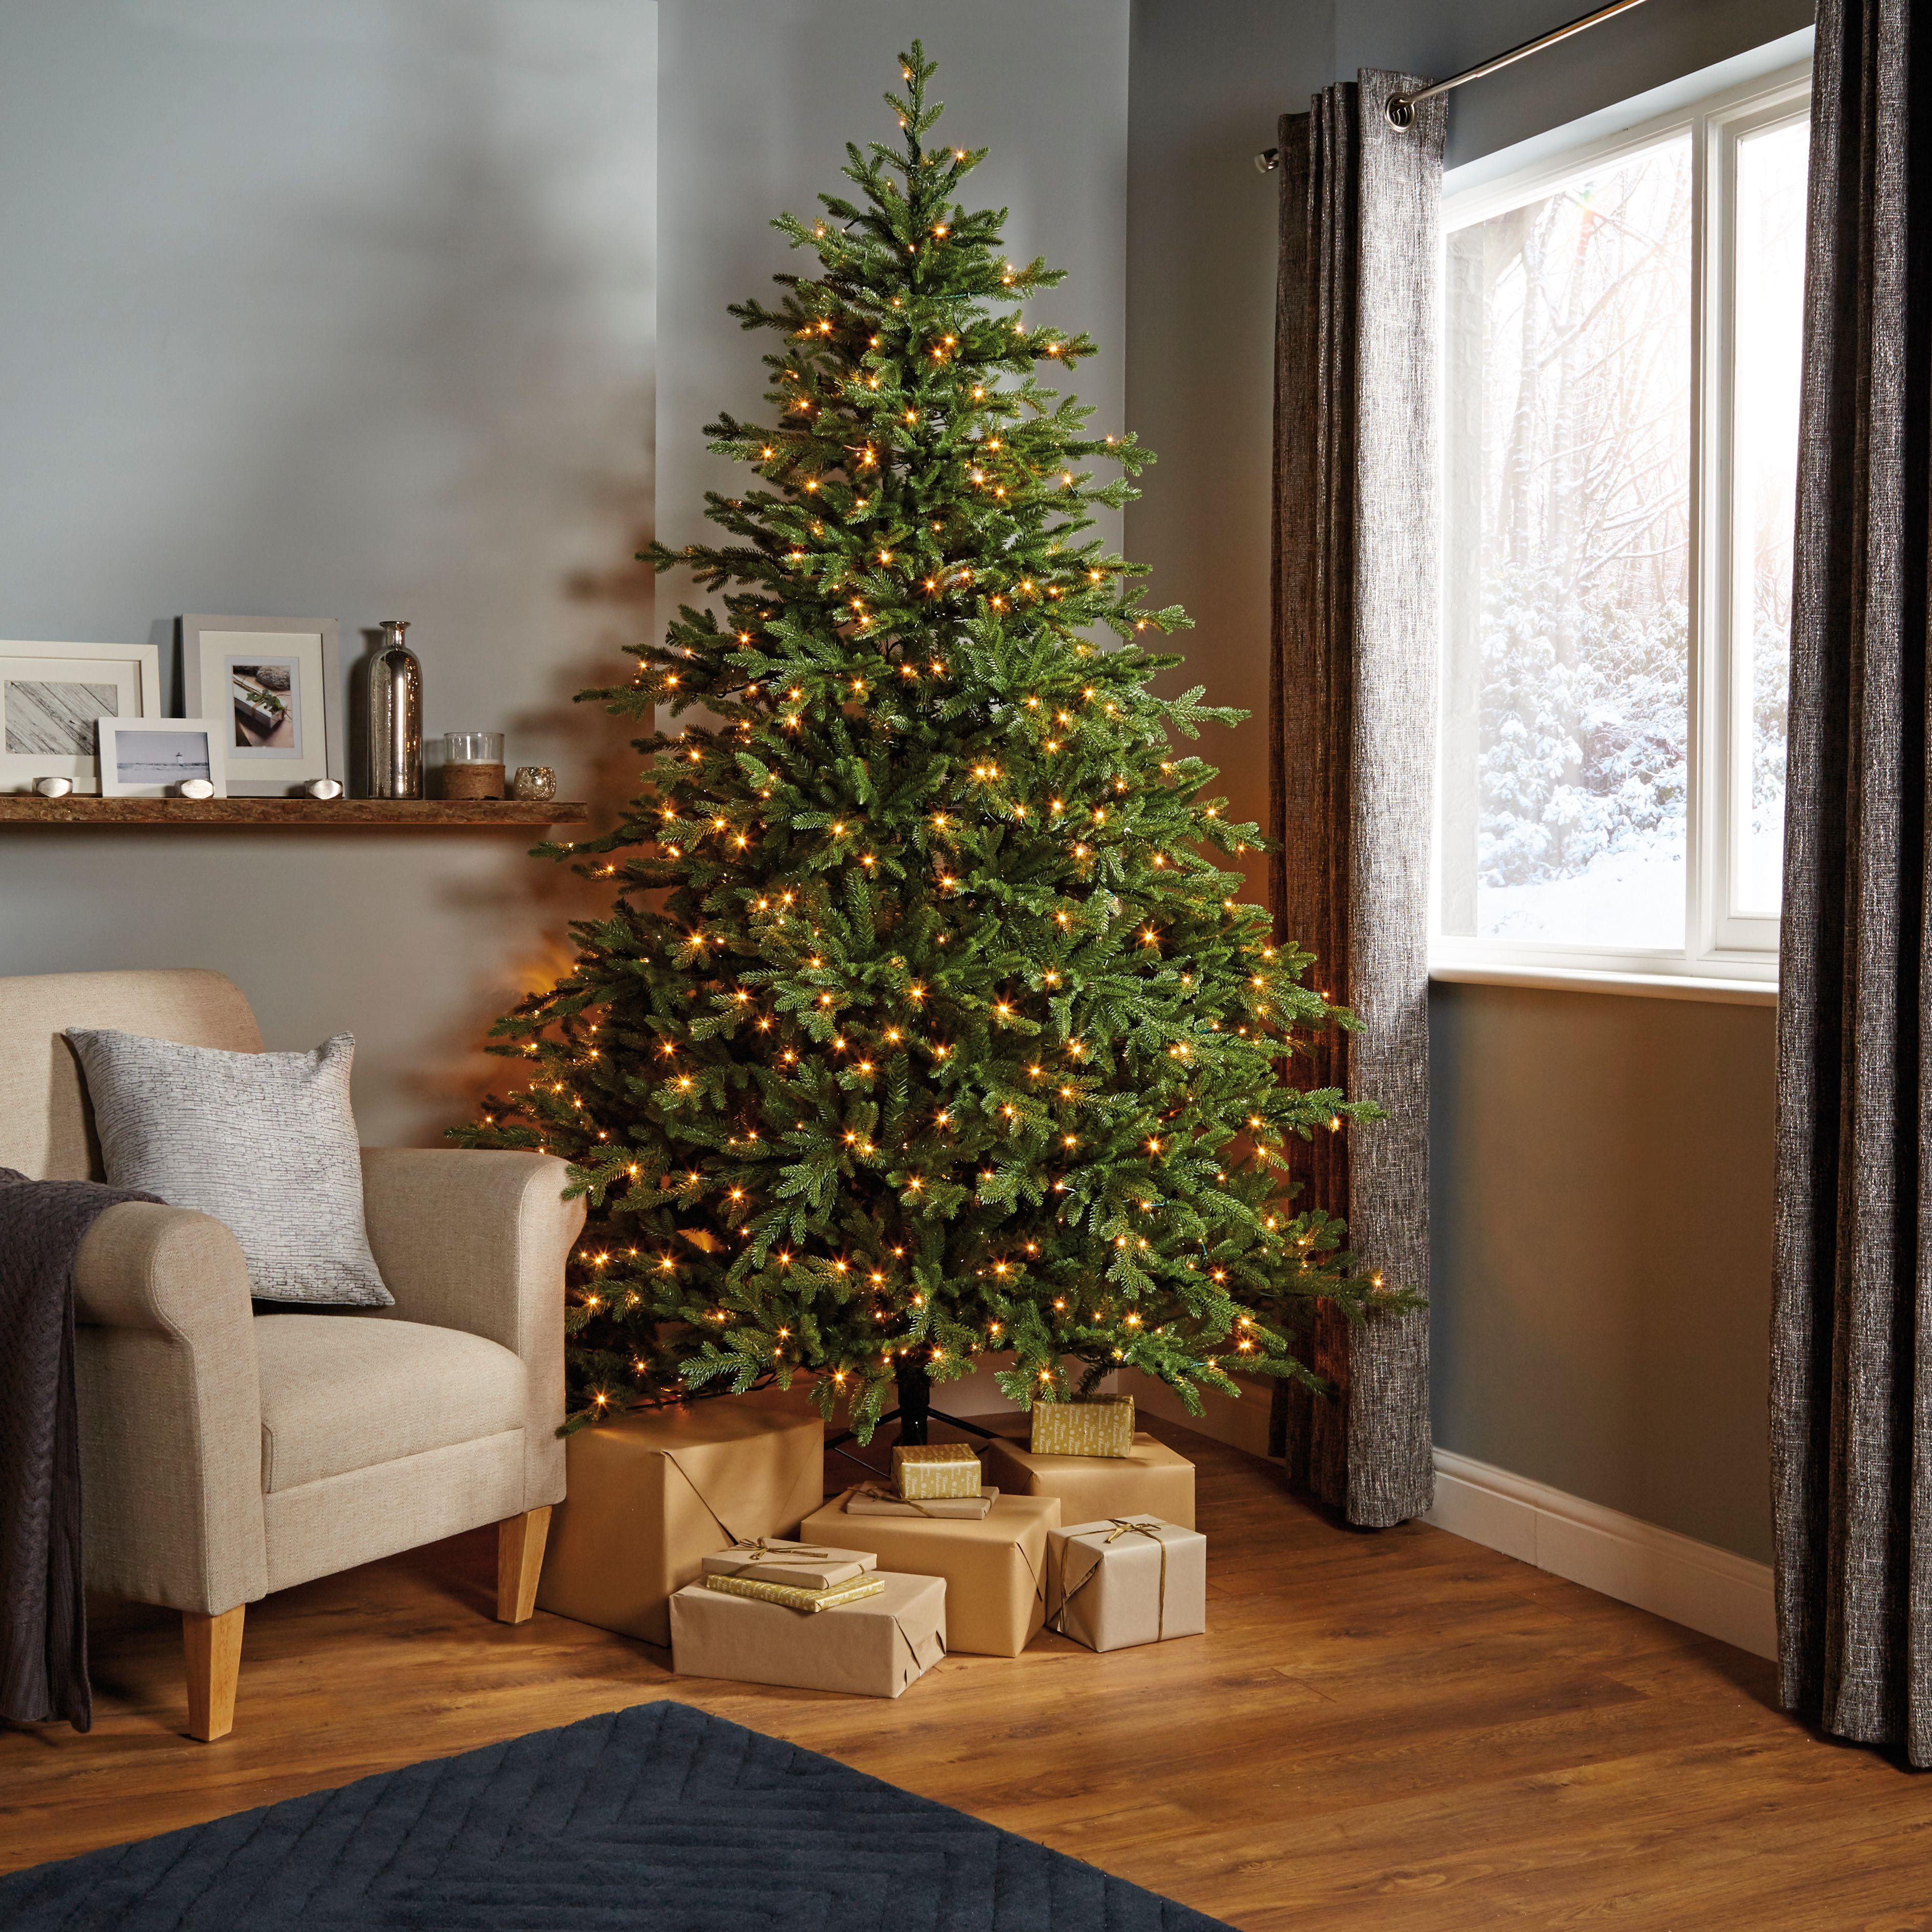 Where To Buy A Pre Lit Christmas Tree: 7ft 6In Thetford Pre-Lit LED Christmas Tree